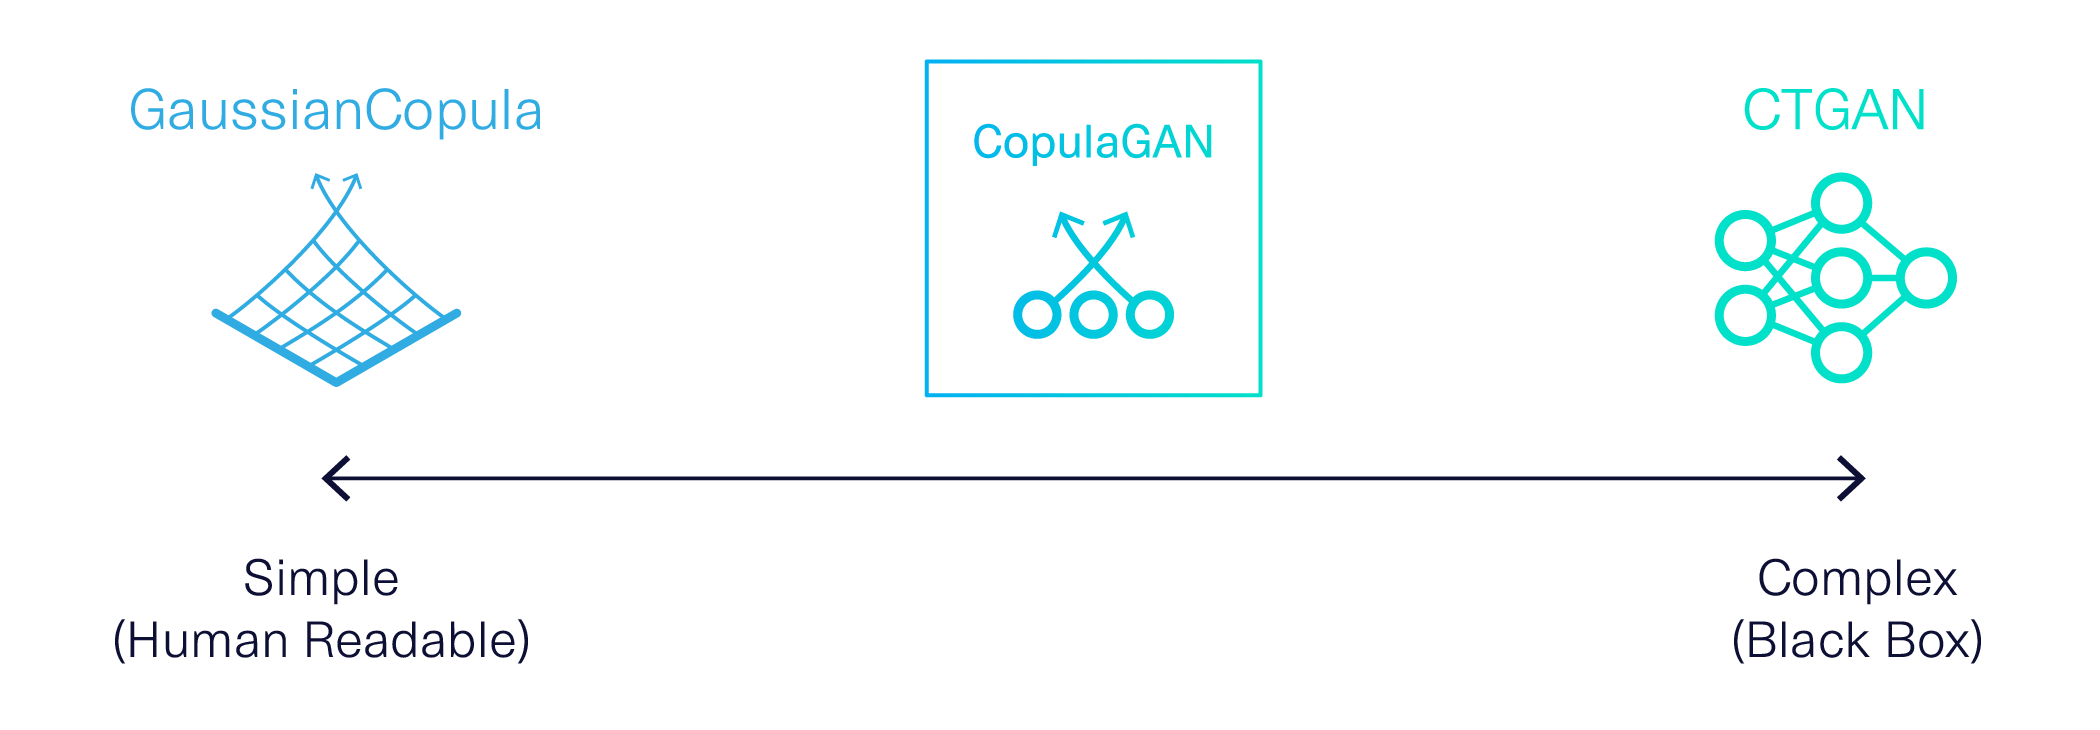 A diagram showing a scale of simple human accessible models (GaussianCopula) versus complex black box models (like CTGAN), with CopulaGAN is in the middle.